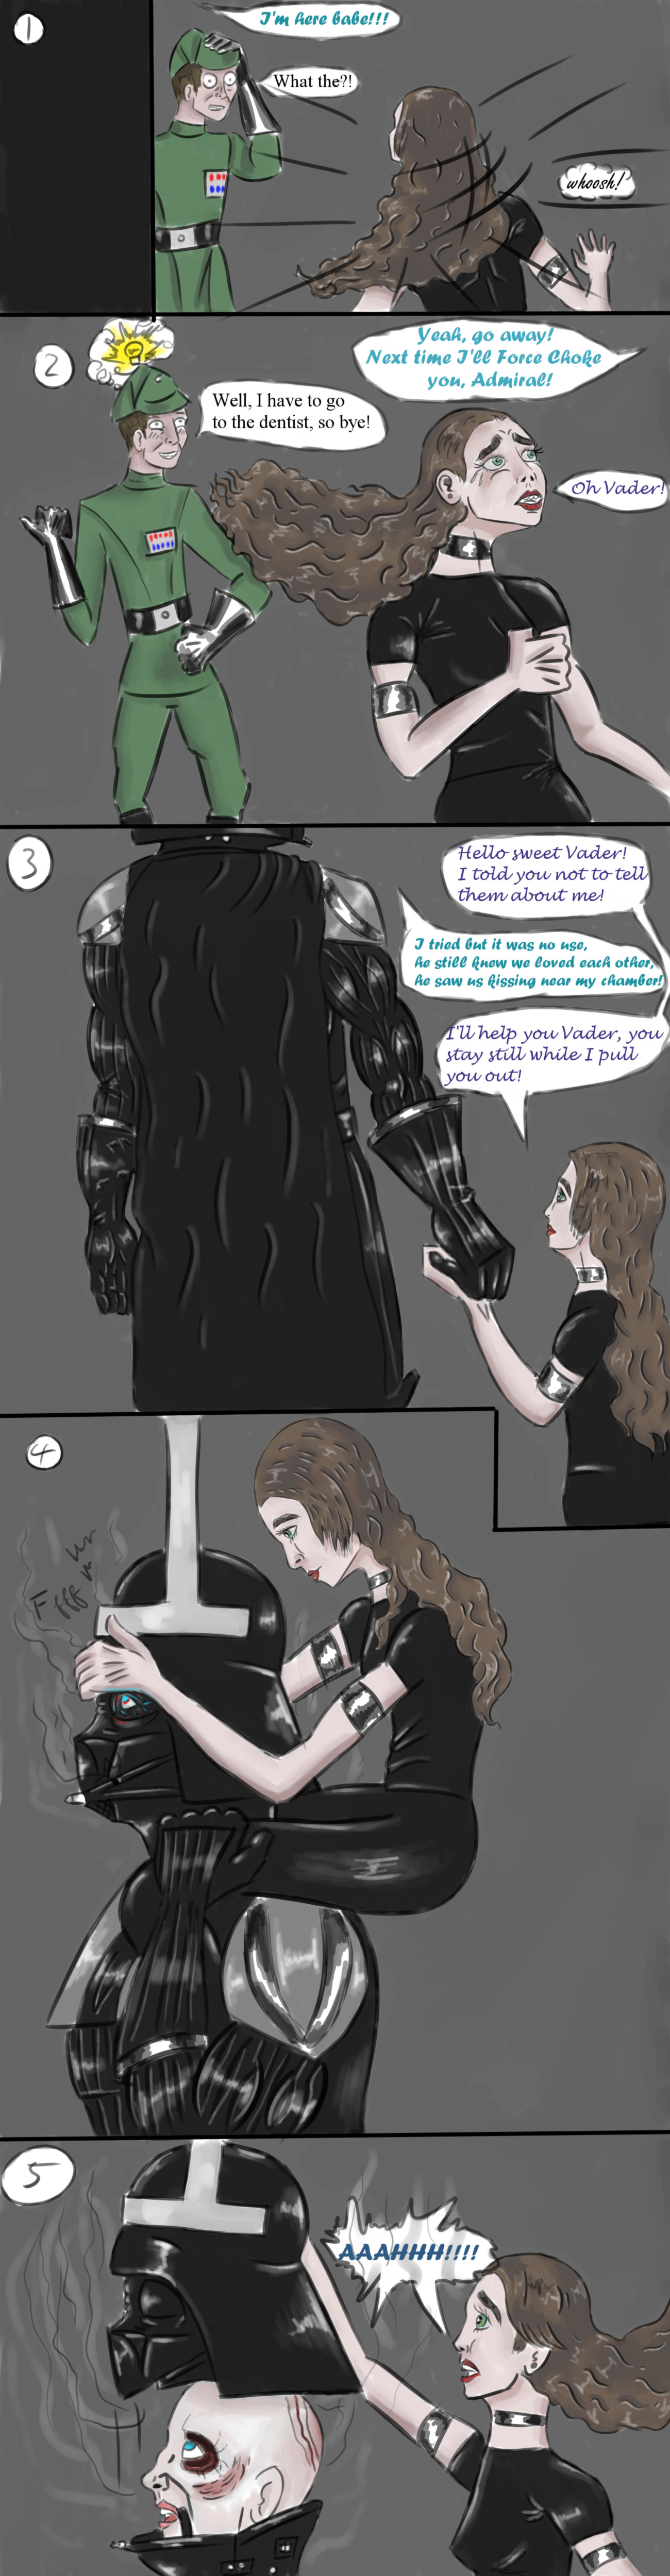 Comic - Vader's stuck! page 3 by EletricDaisy